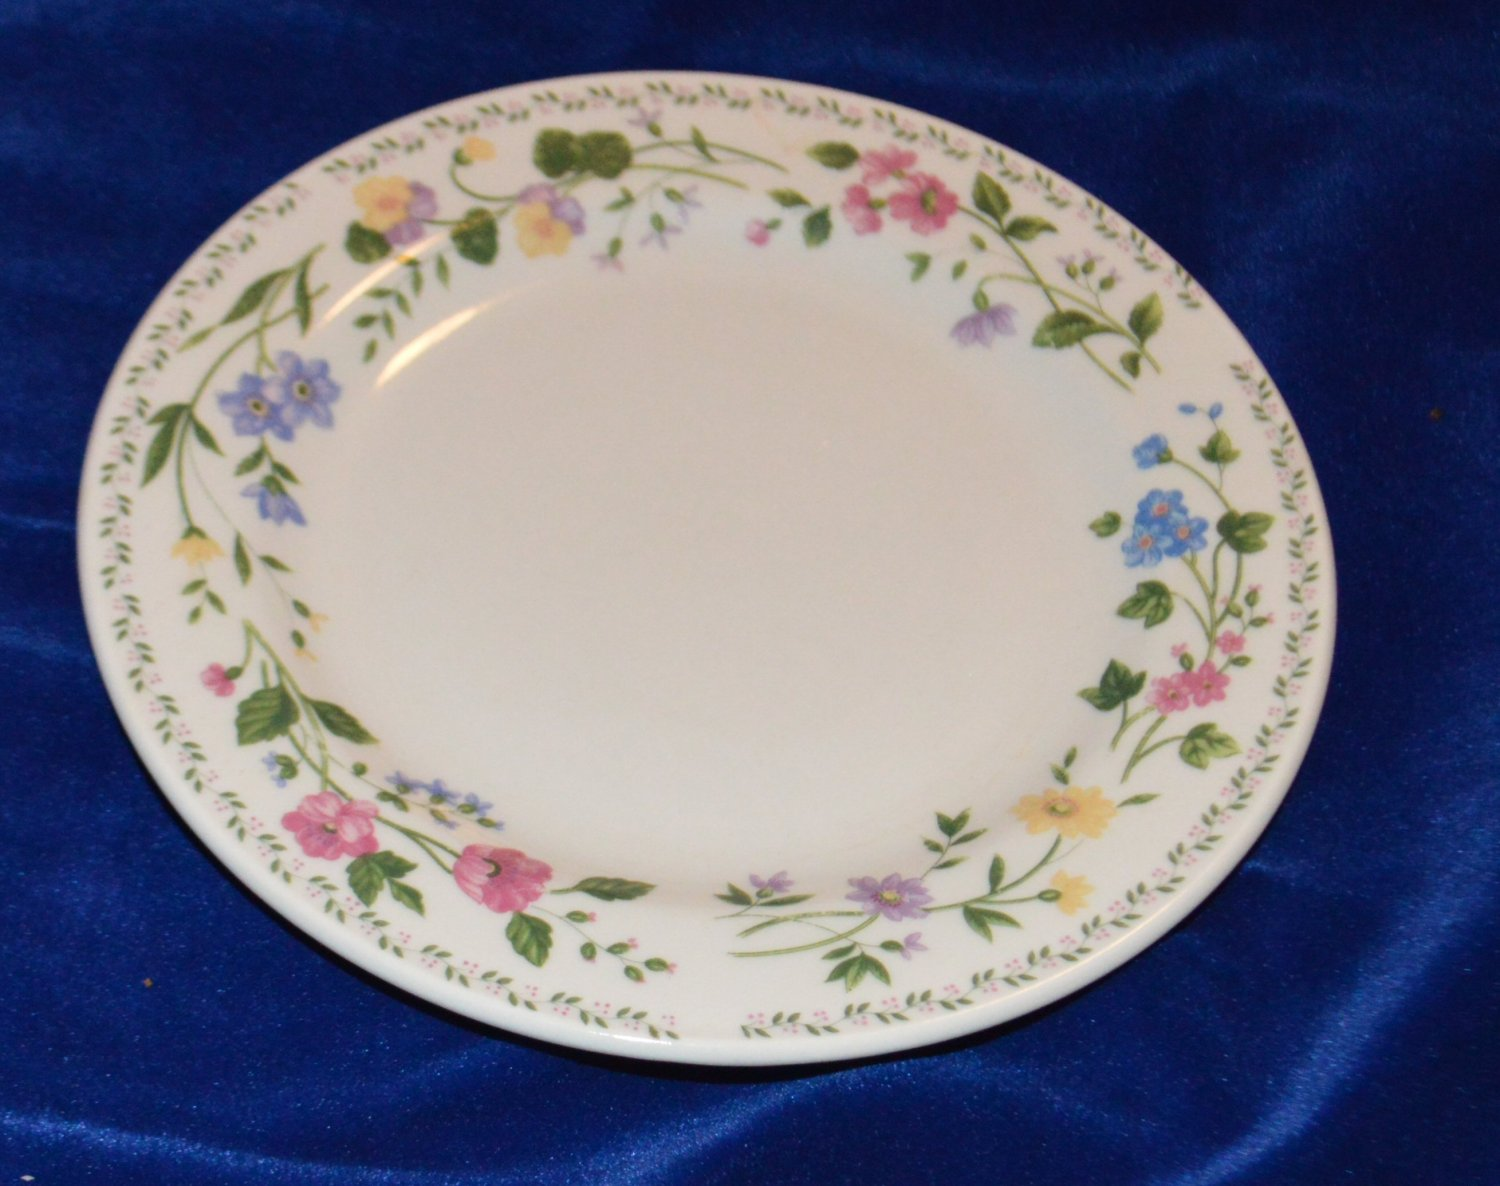 Farberware Stoneware English Garden 225 signed Salad Dessert Plate Dish 1993